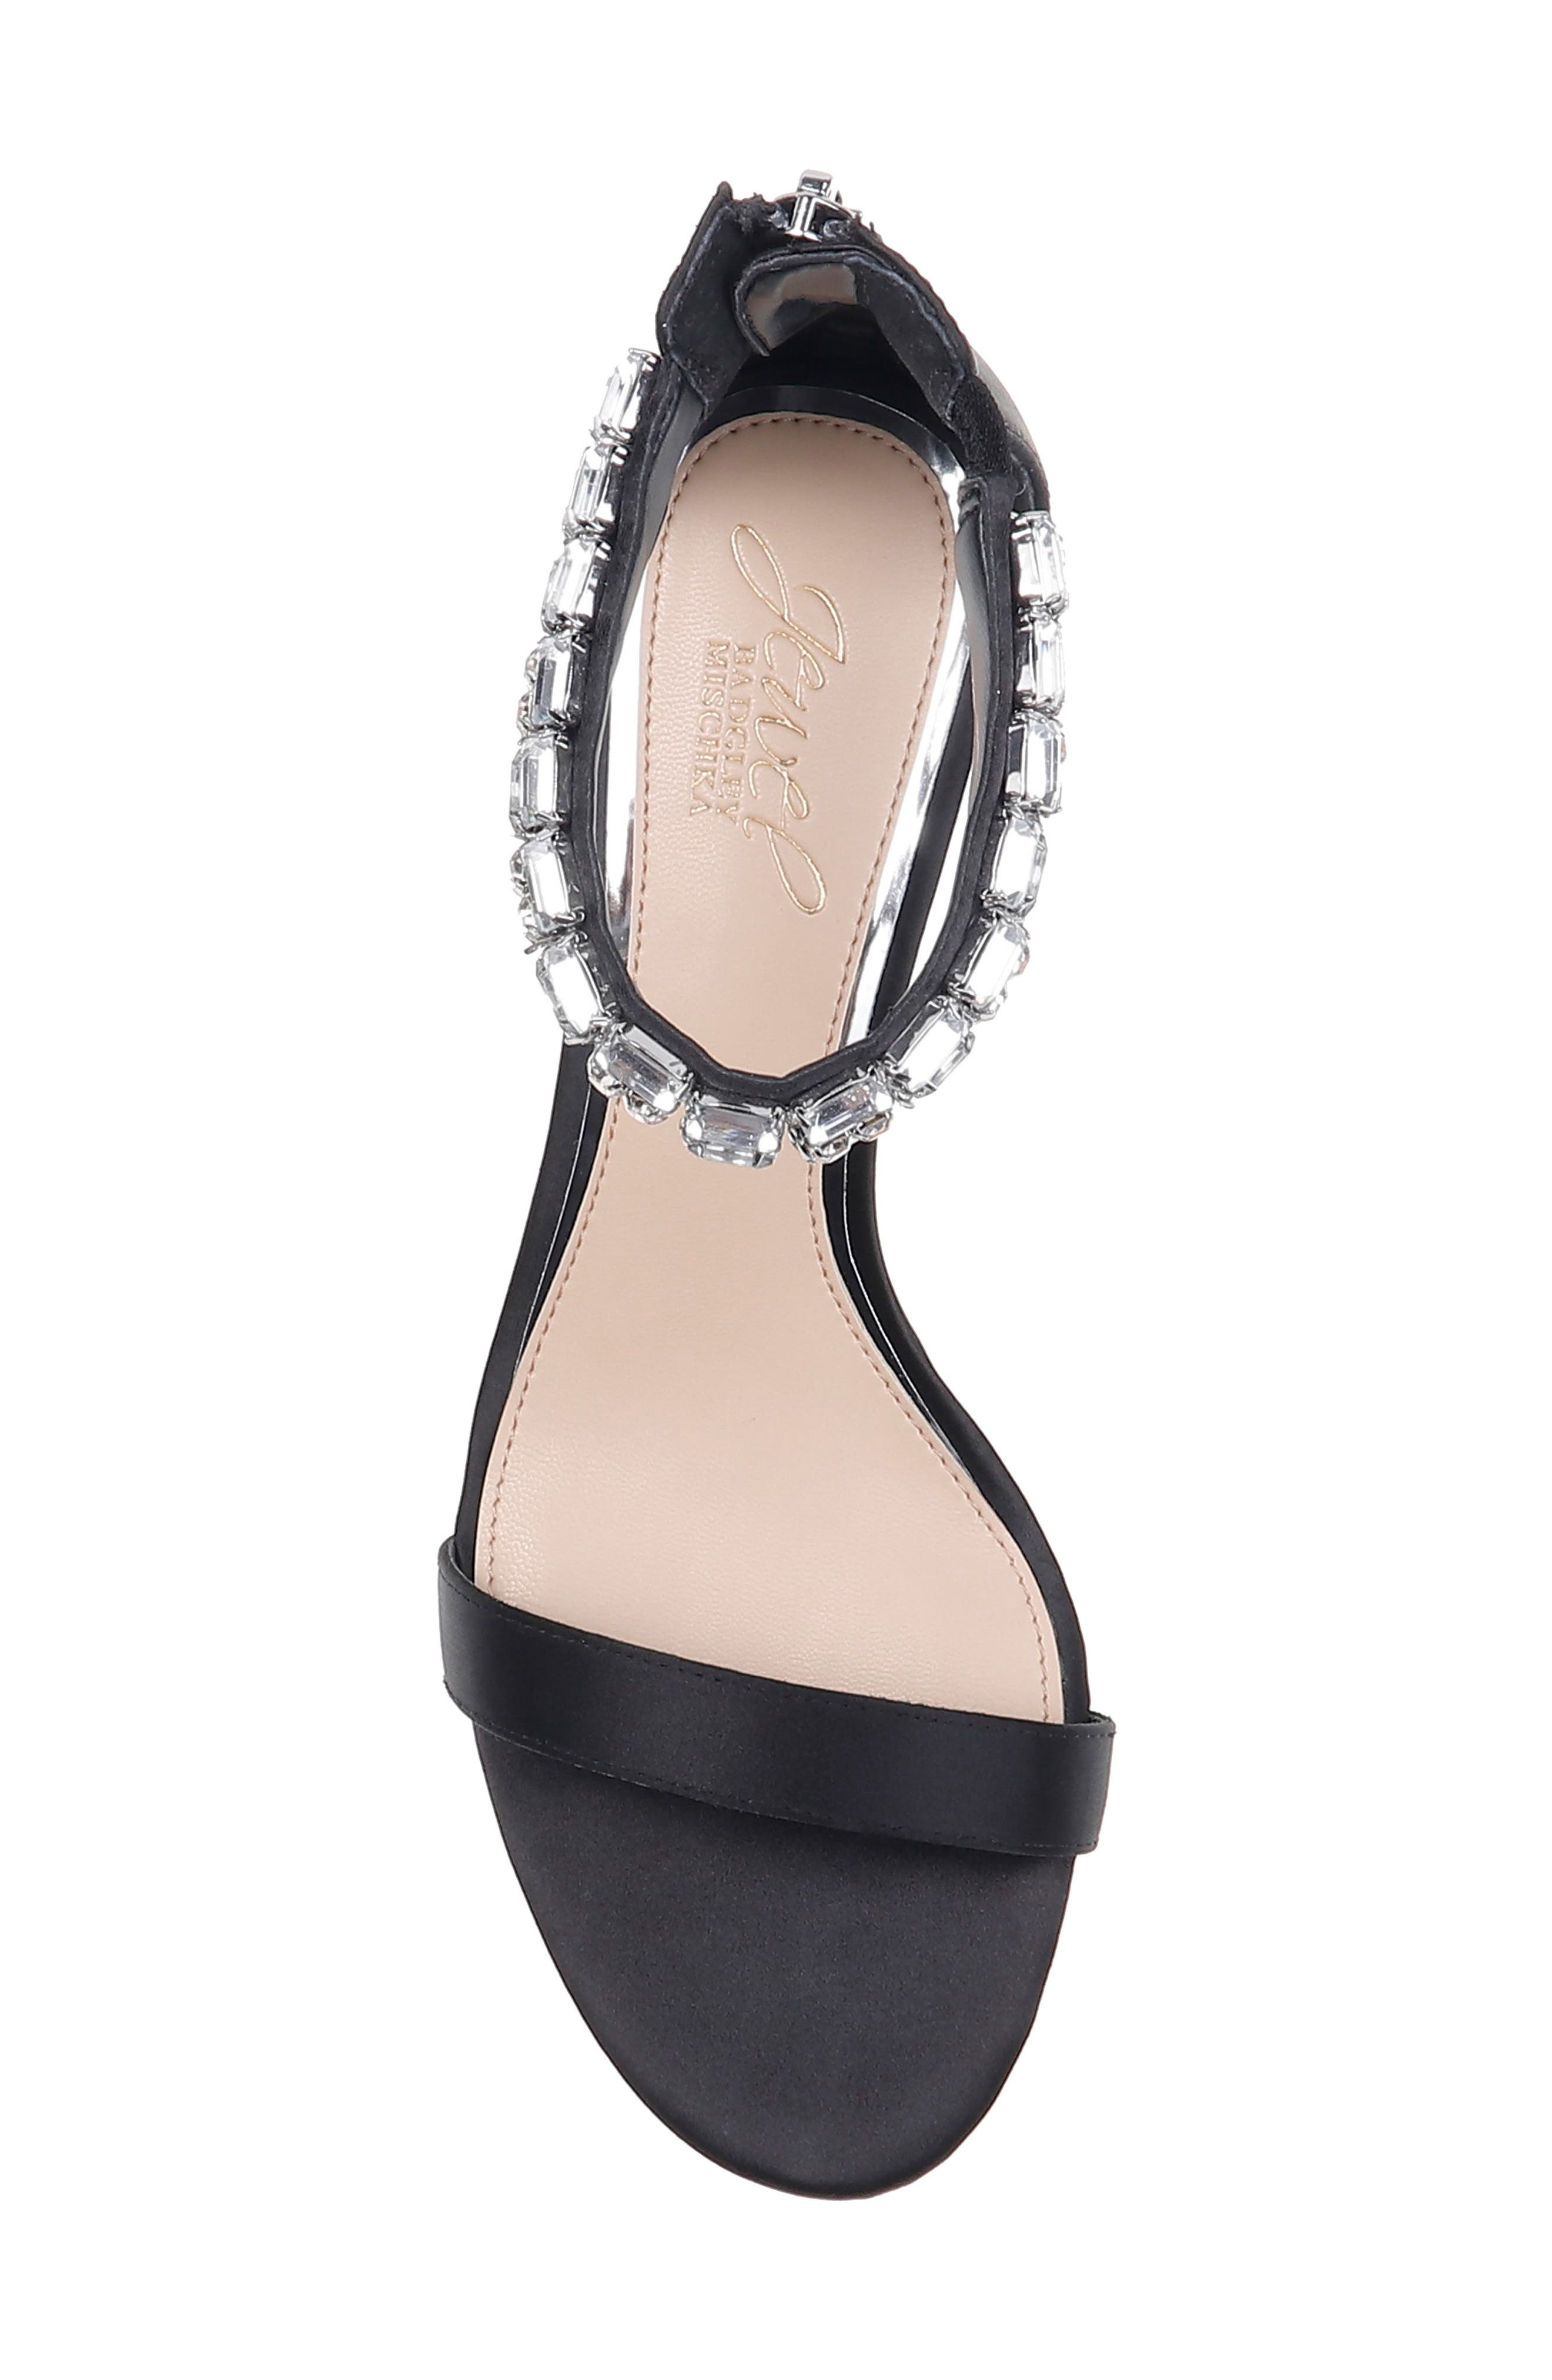 JEWEL BADGLEY MISCHKA, Katerina Ankle Strap Sandal, Alternate thumbnail 5, color, BLACK CRYSTAL SATIN